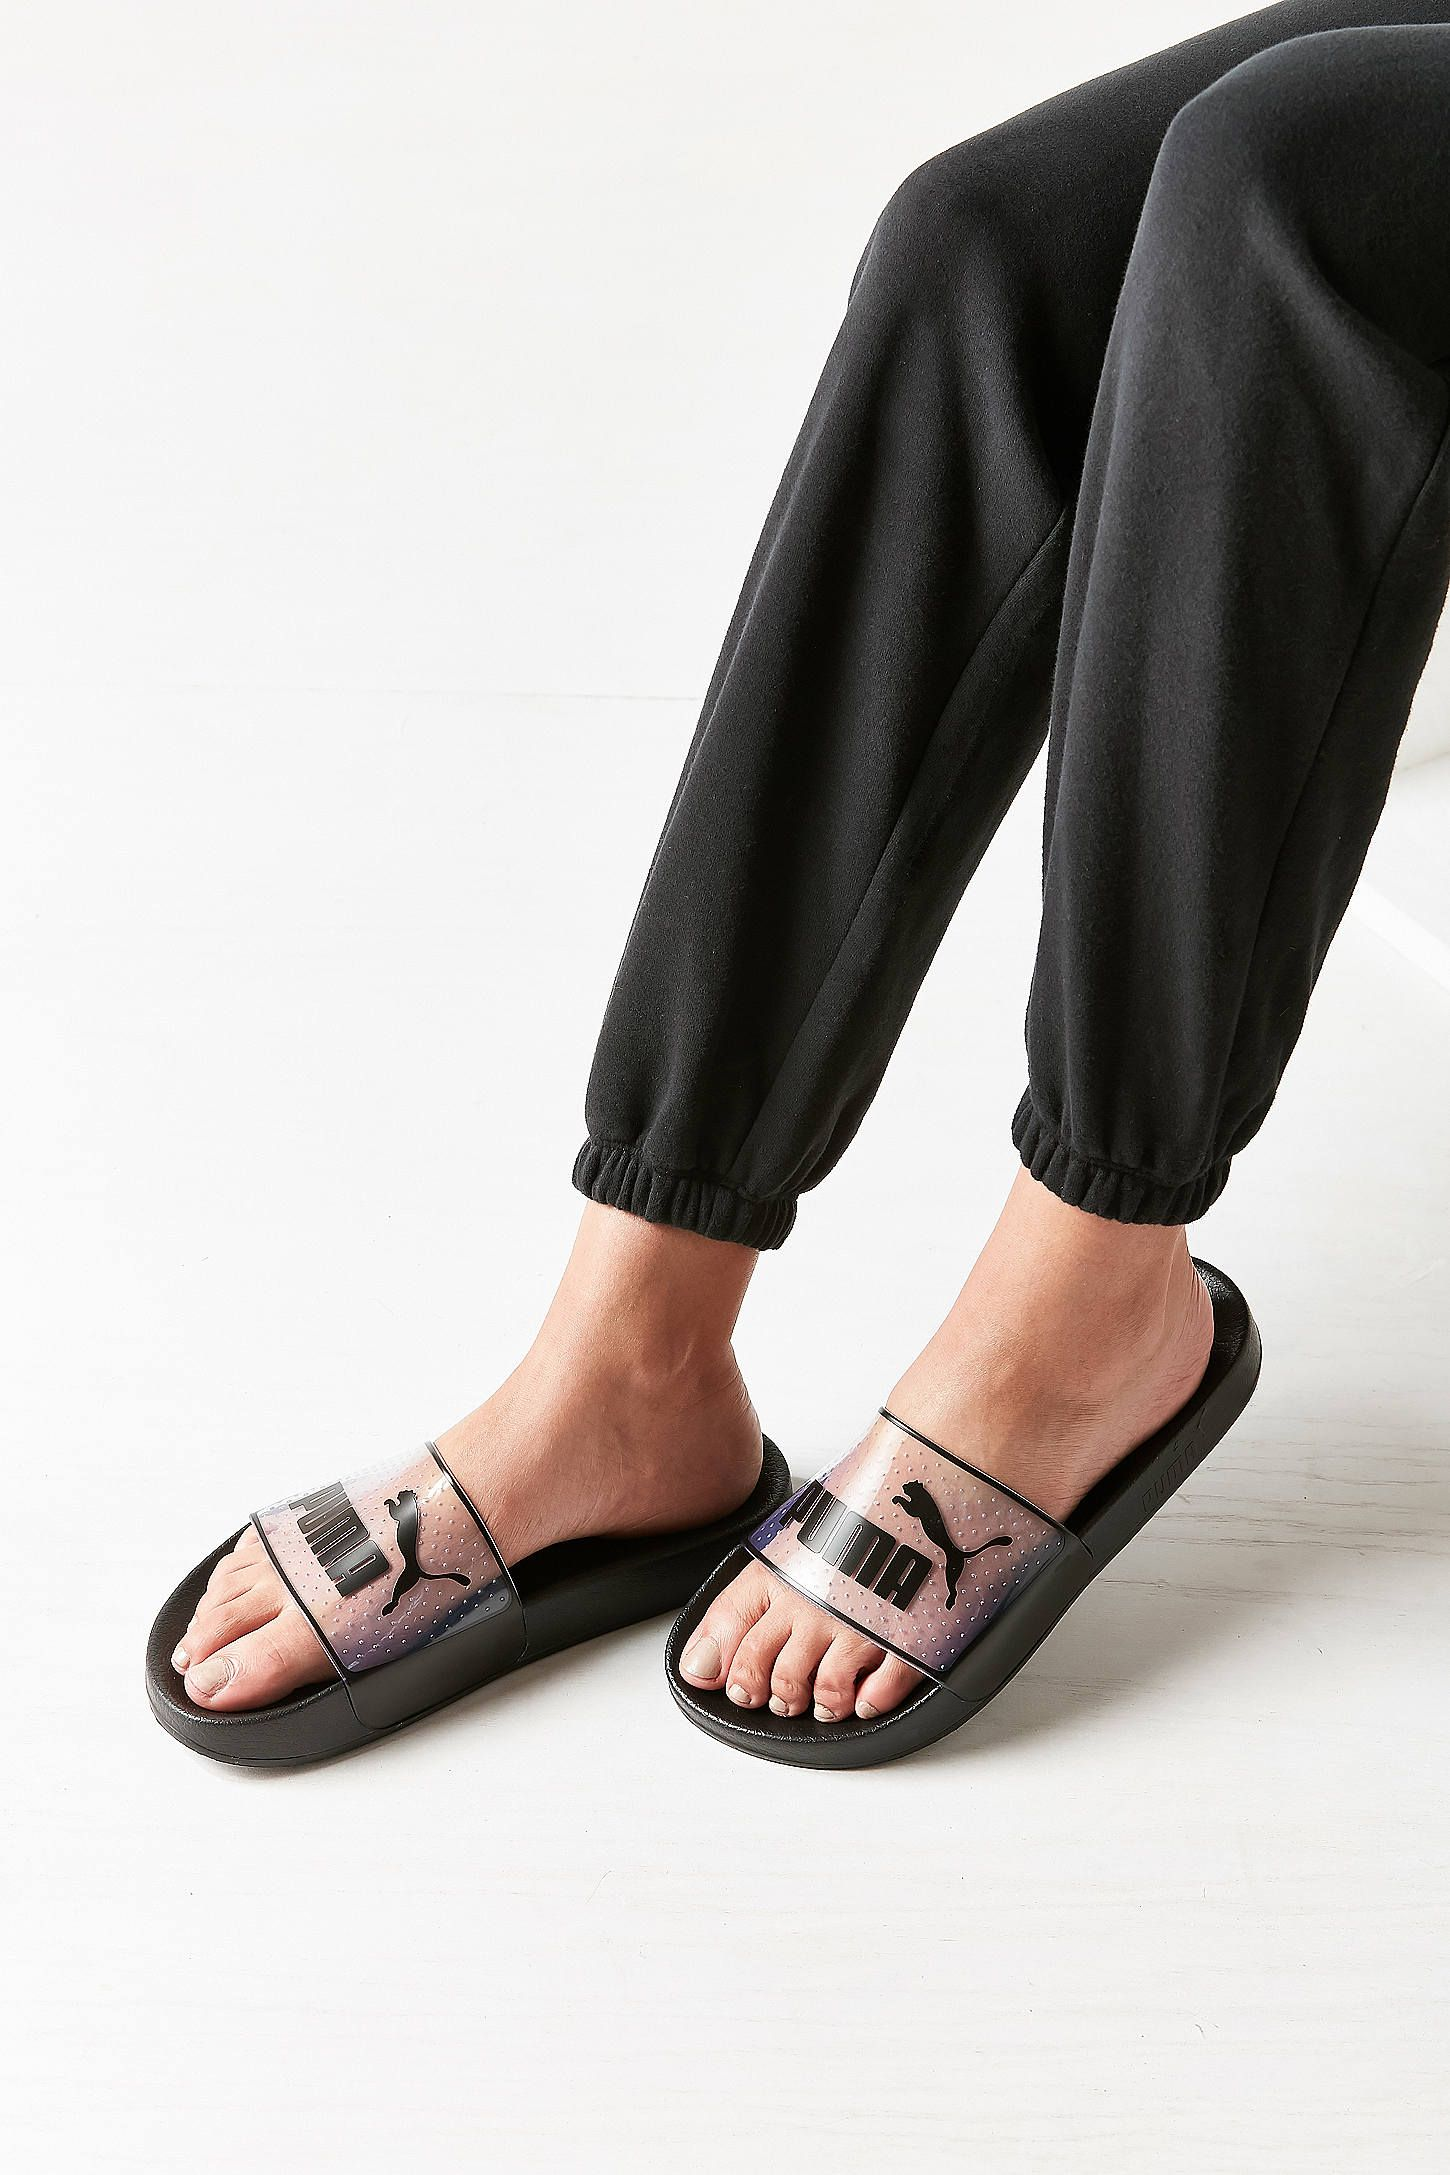 2e1c6a4455c8 Shop Puma Leadcat Jelly Slide at Urban Outfitters today. We carry all the  latest styles